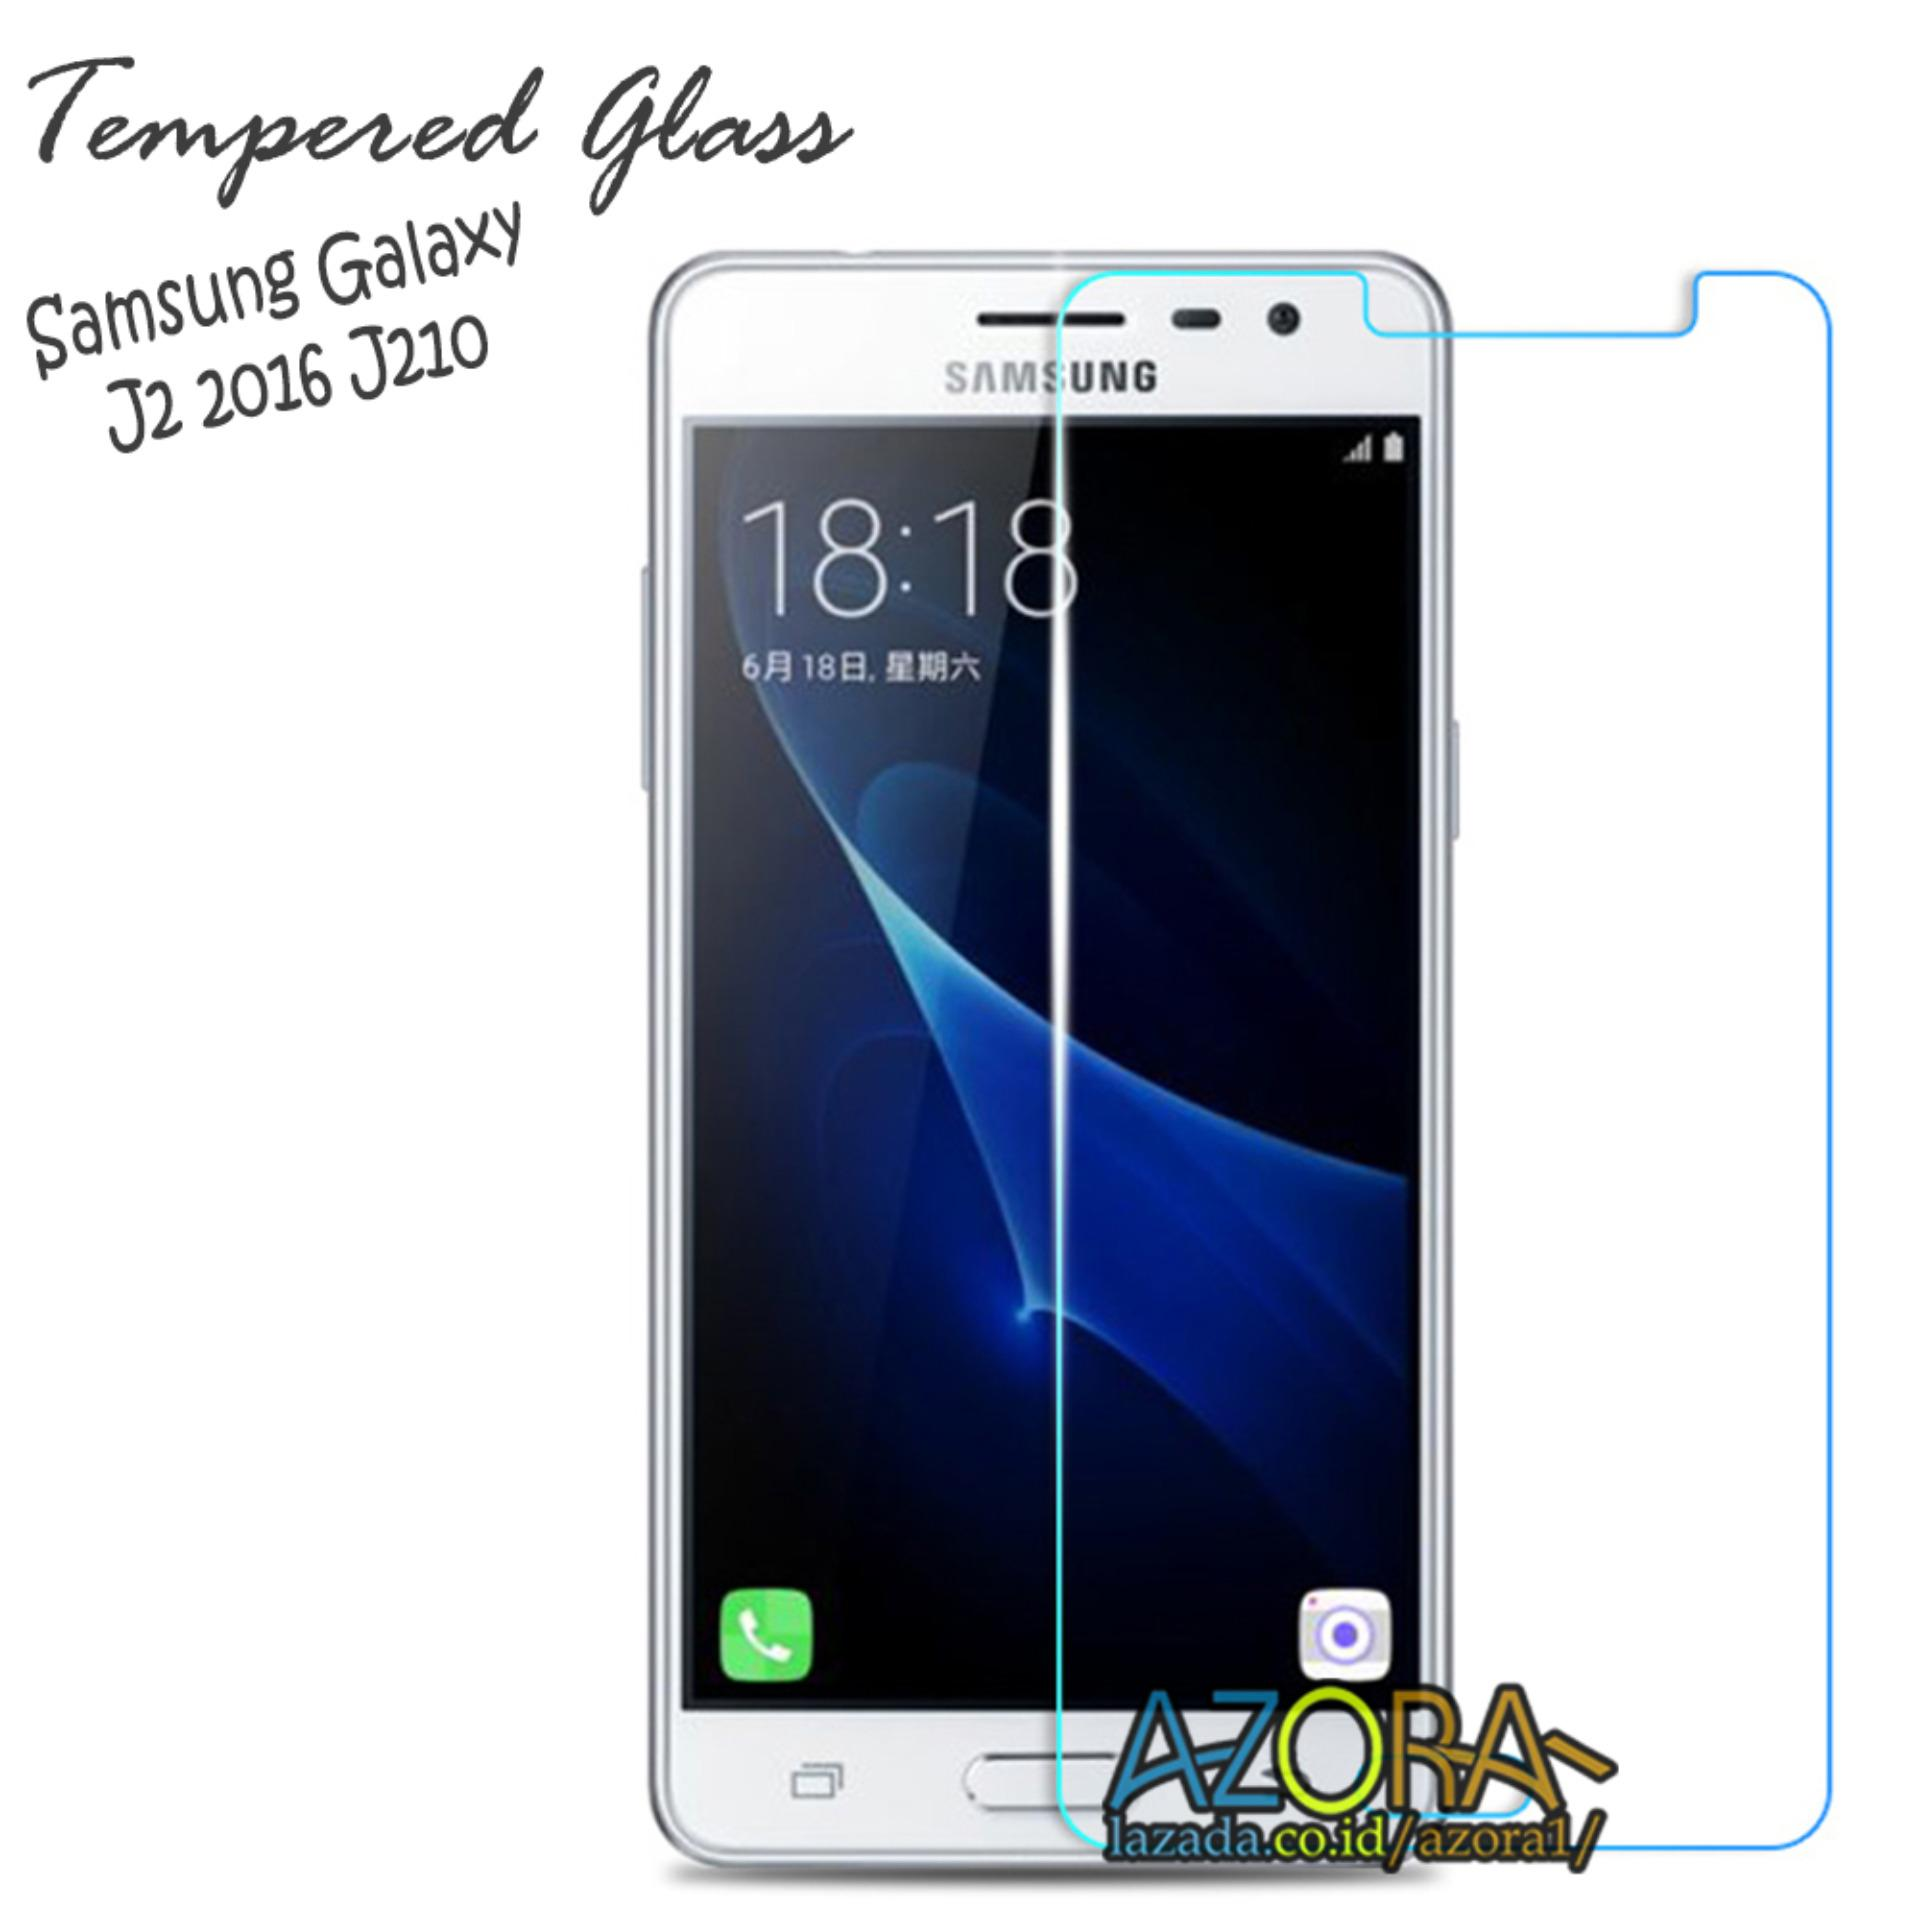 Tempered Glass Protector Anti Gores Terbaik For Samsung Galaxy J1 2016 Kaca Pelindung Layar J2 J210 Screen Bening